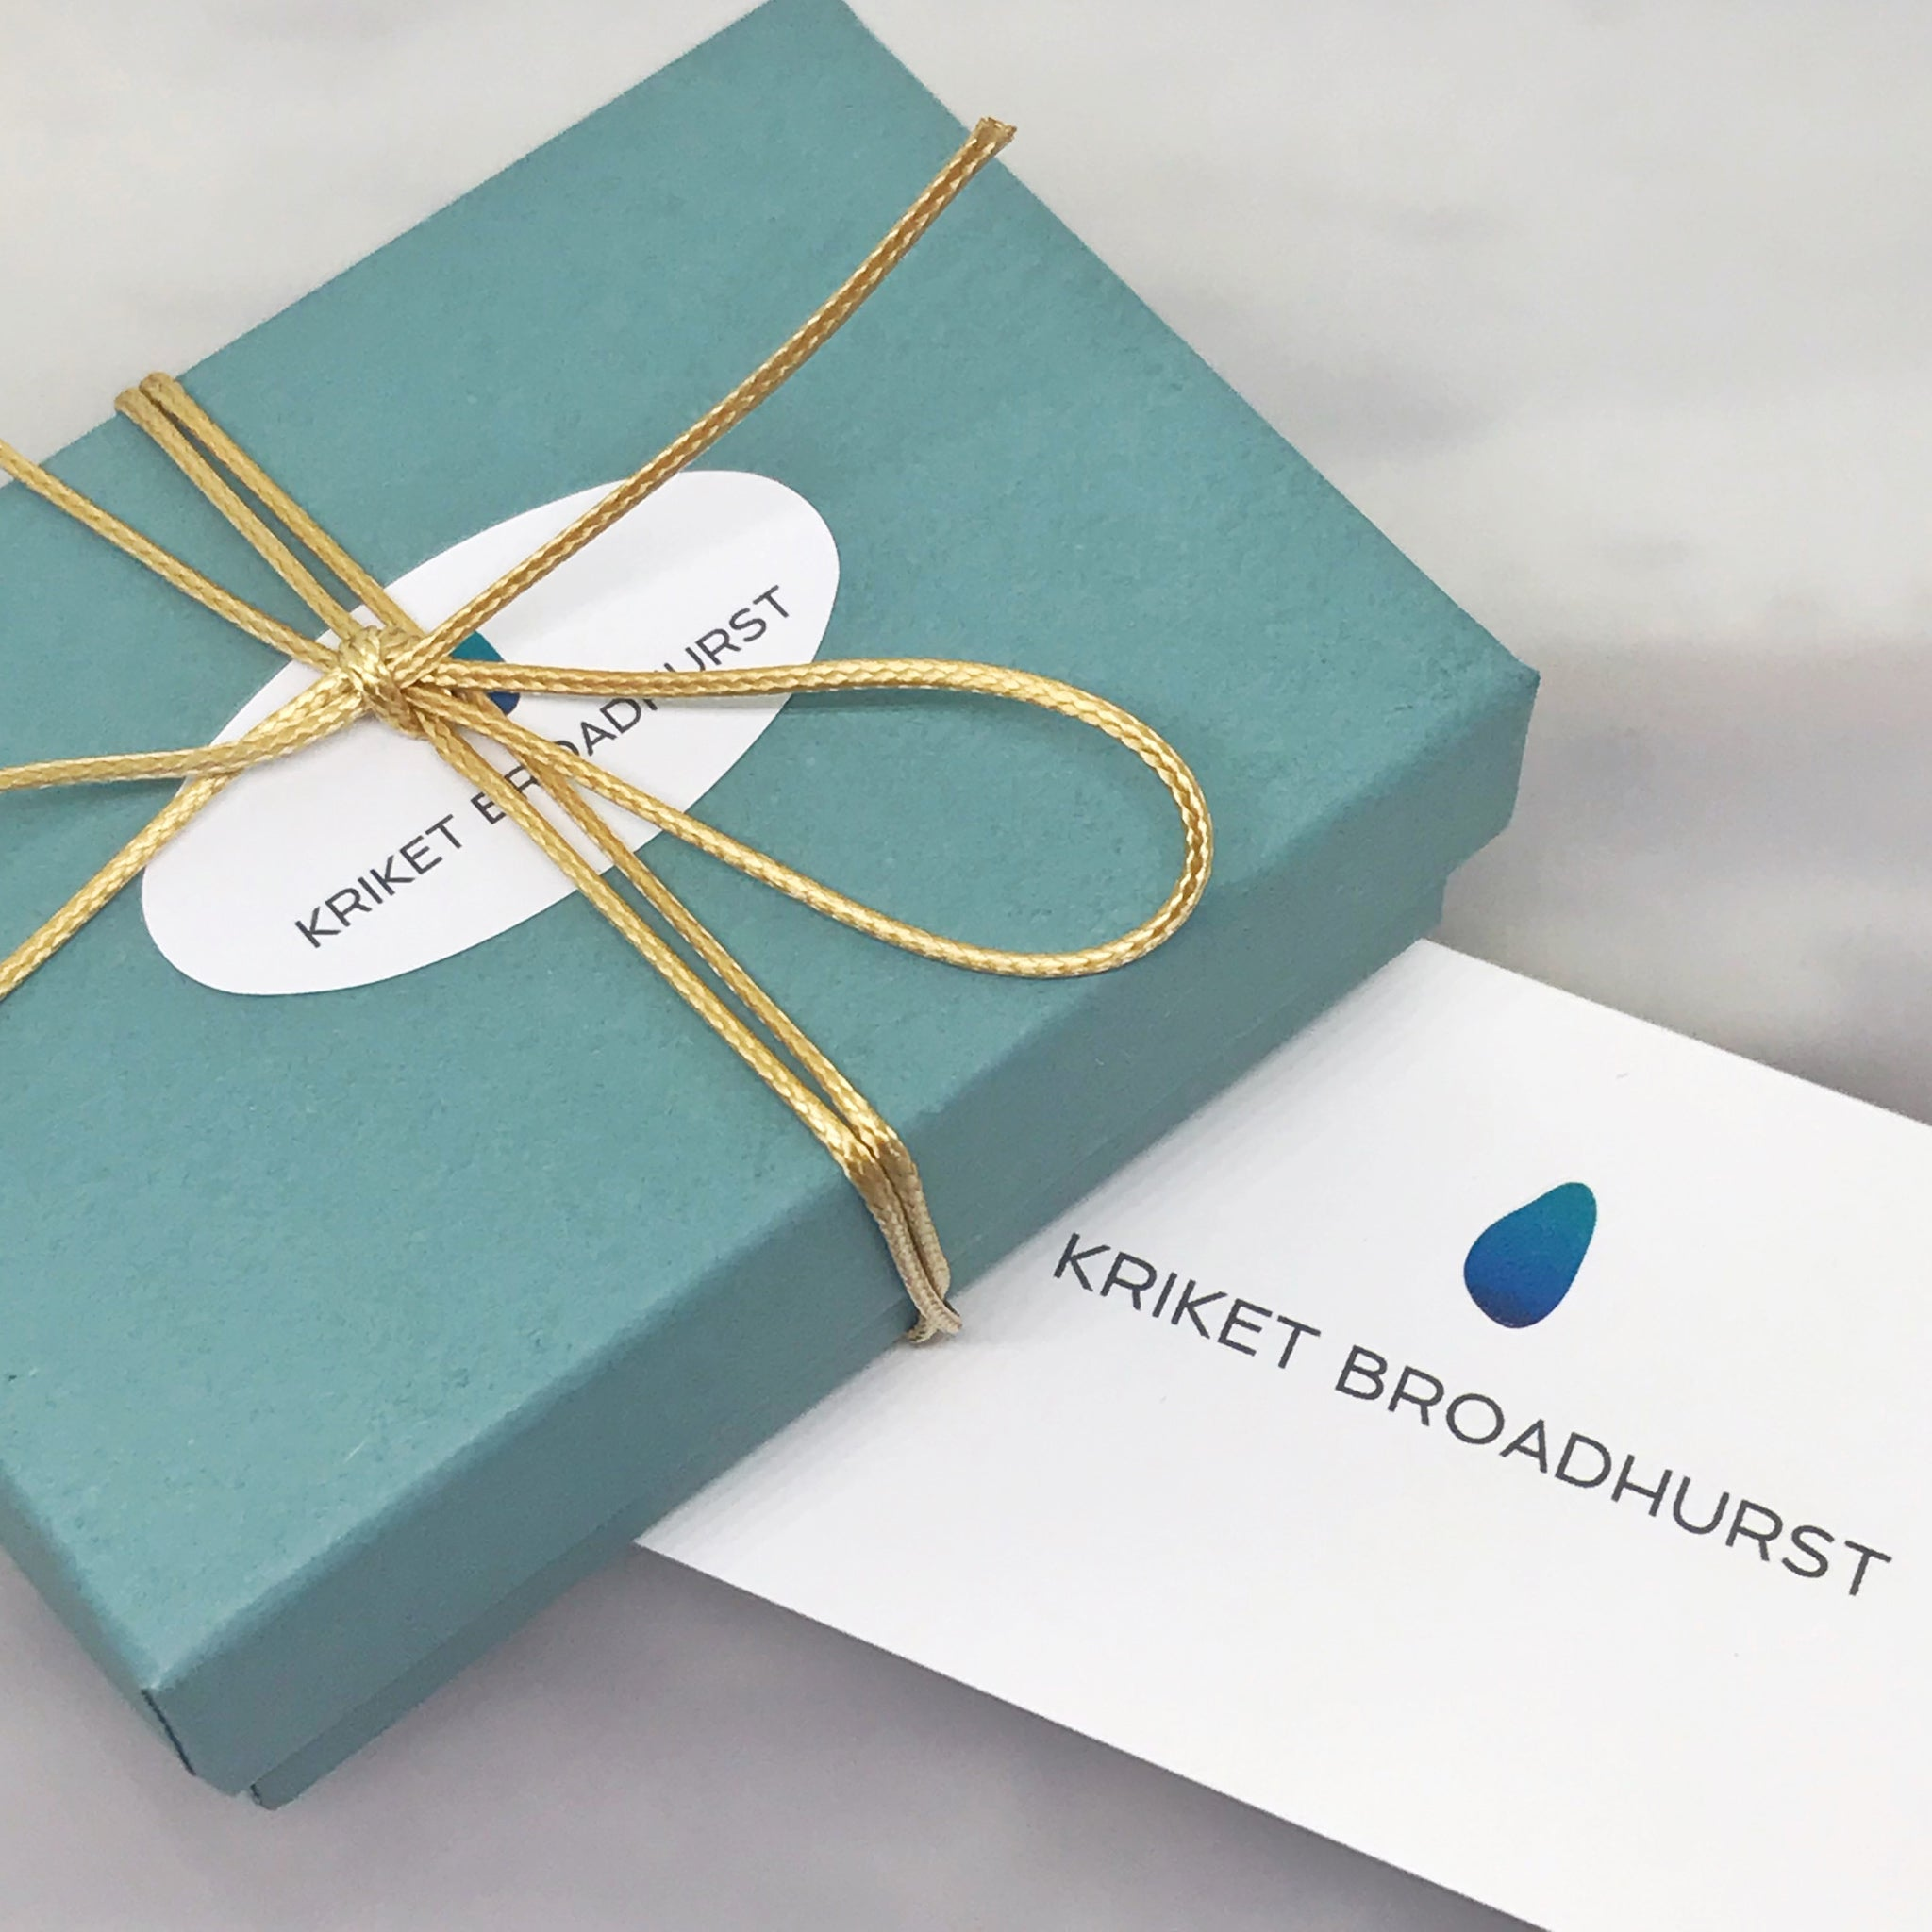 kriket-broadhurst jewellery gift box